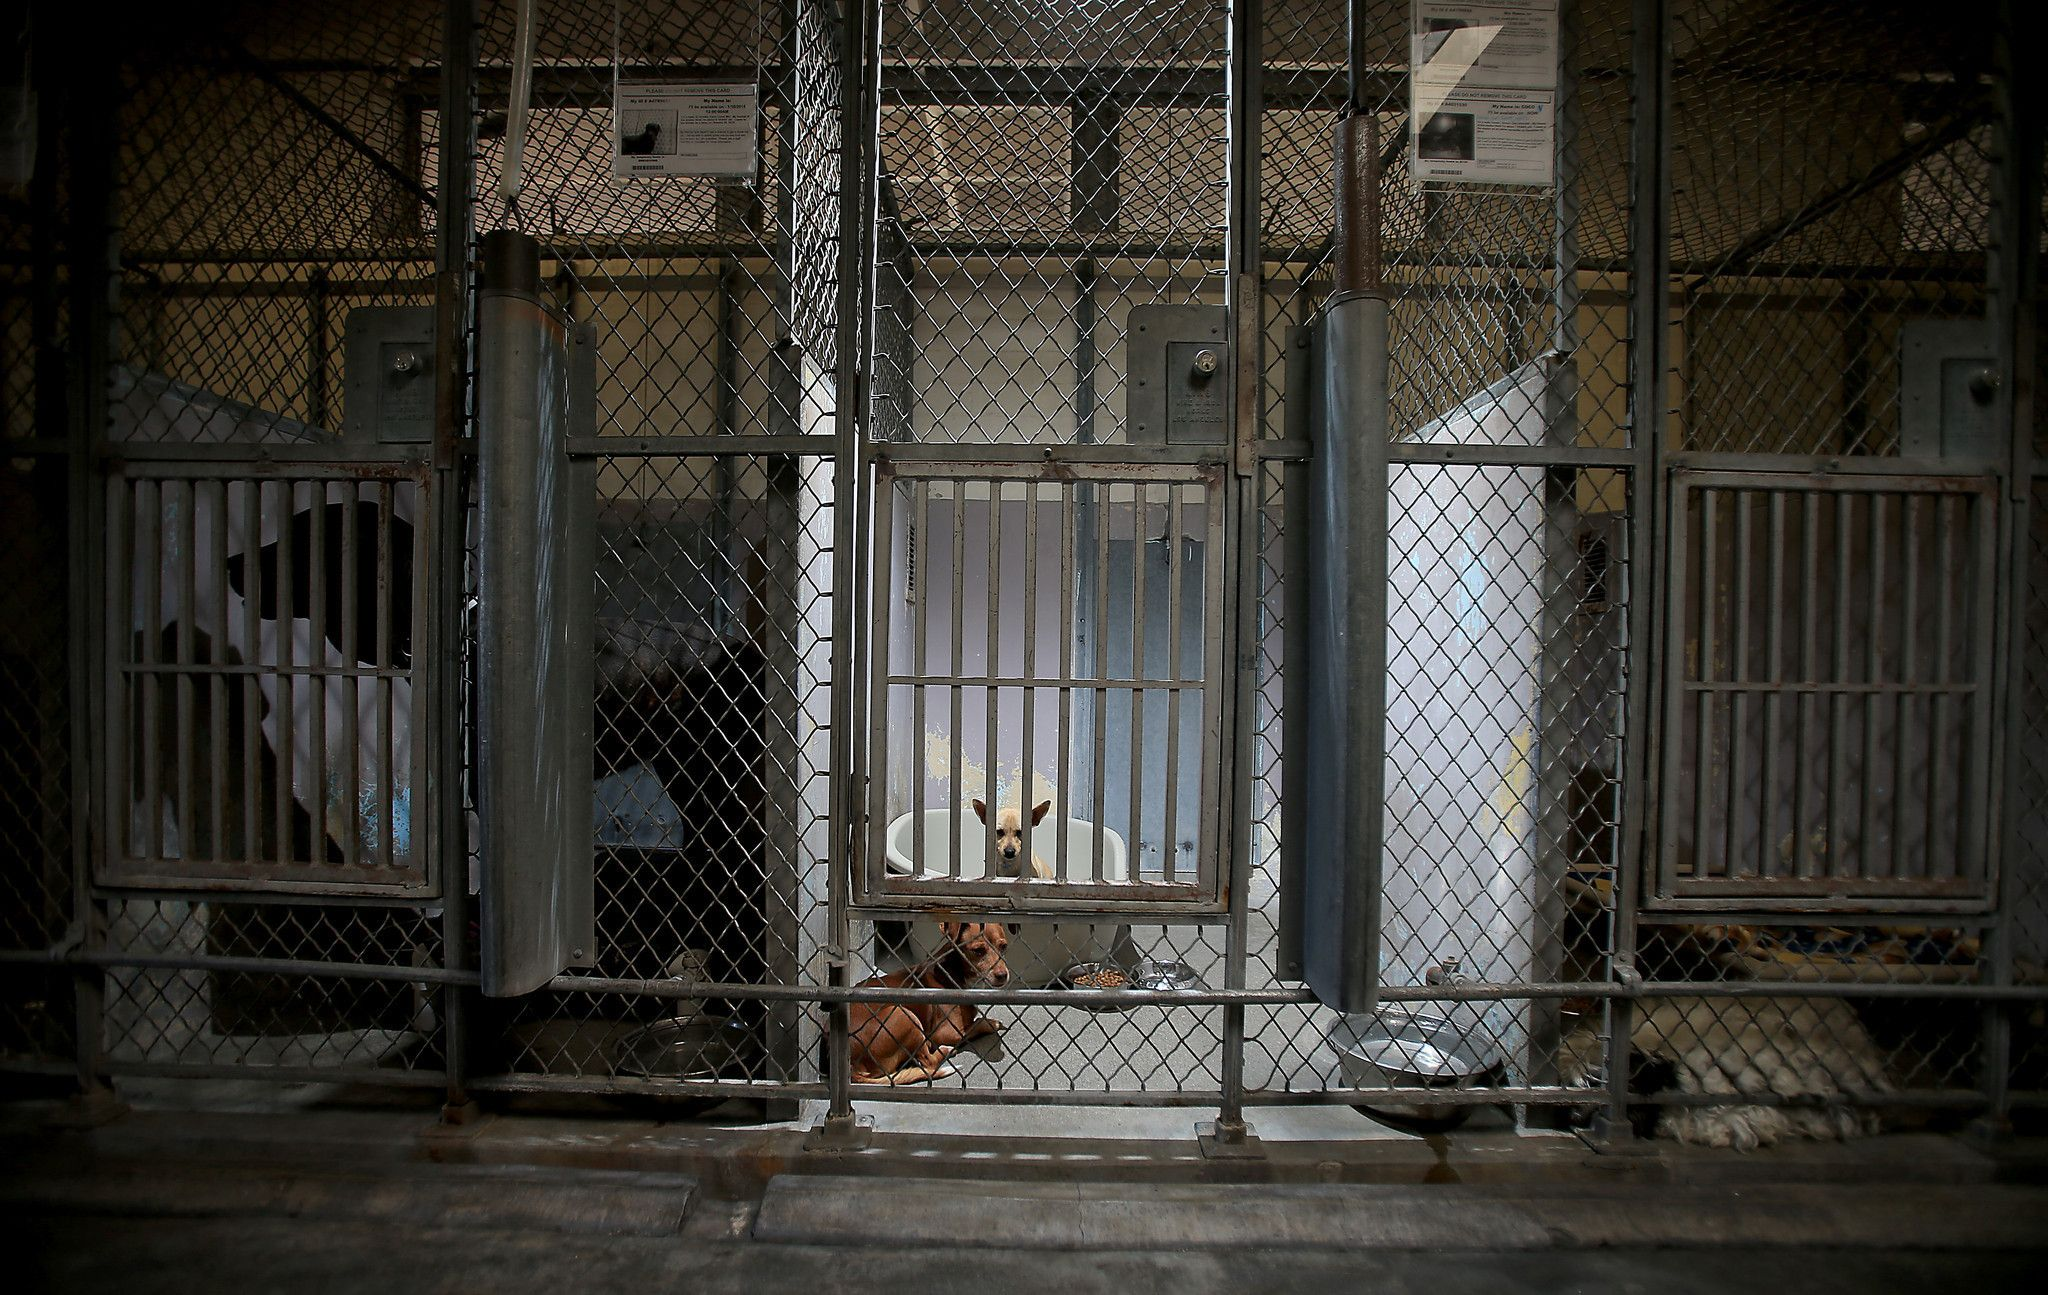 Supervisor Wants L A County To Put A New Animal Shelter In A Jail Animal Shelter Shelter Animals